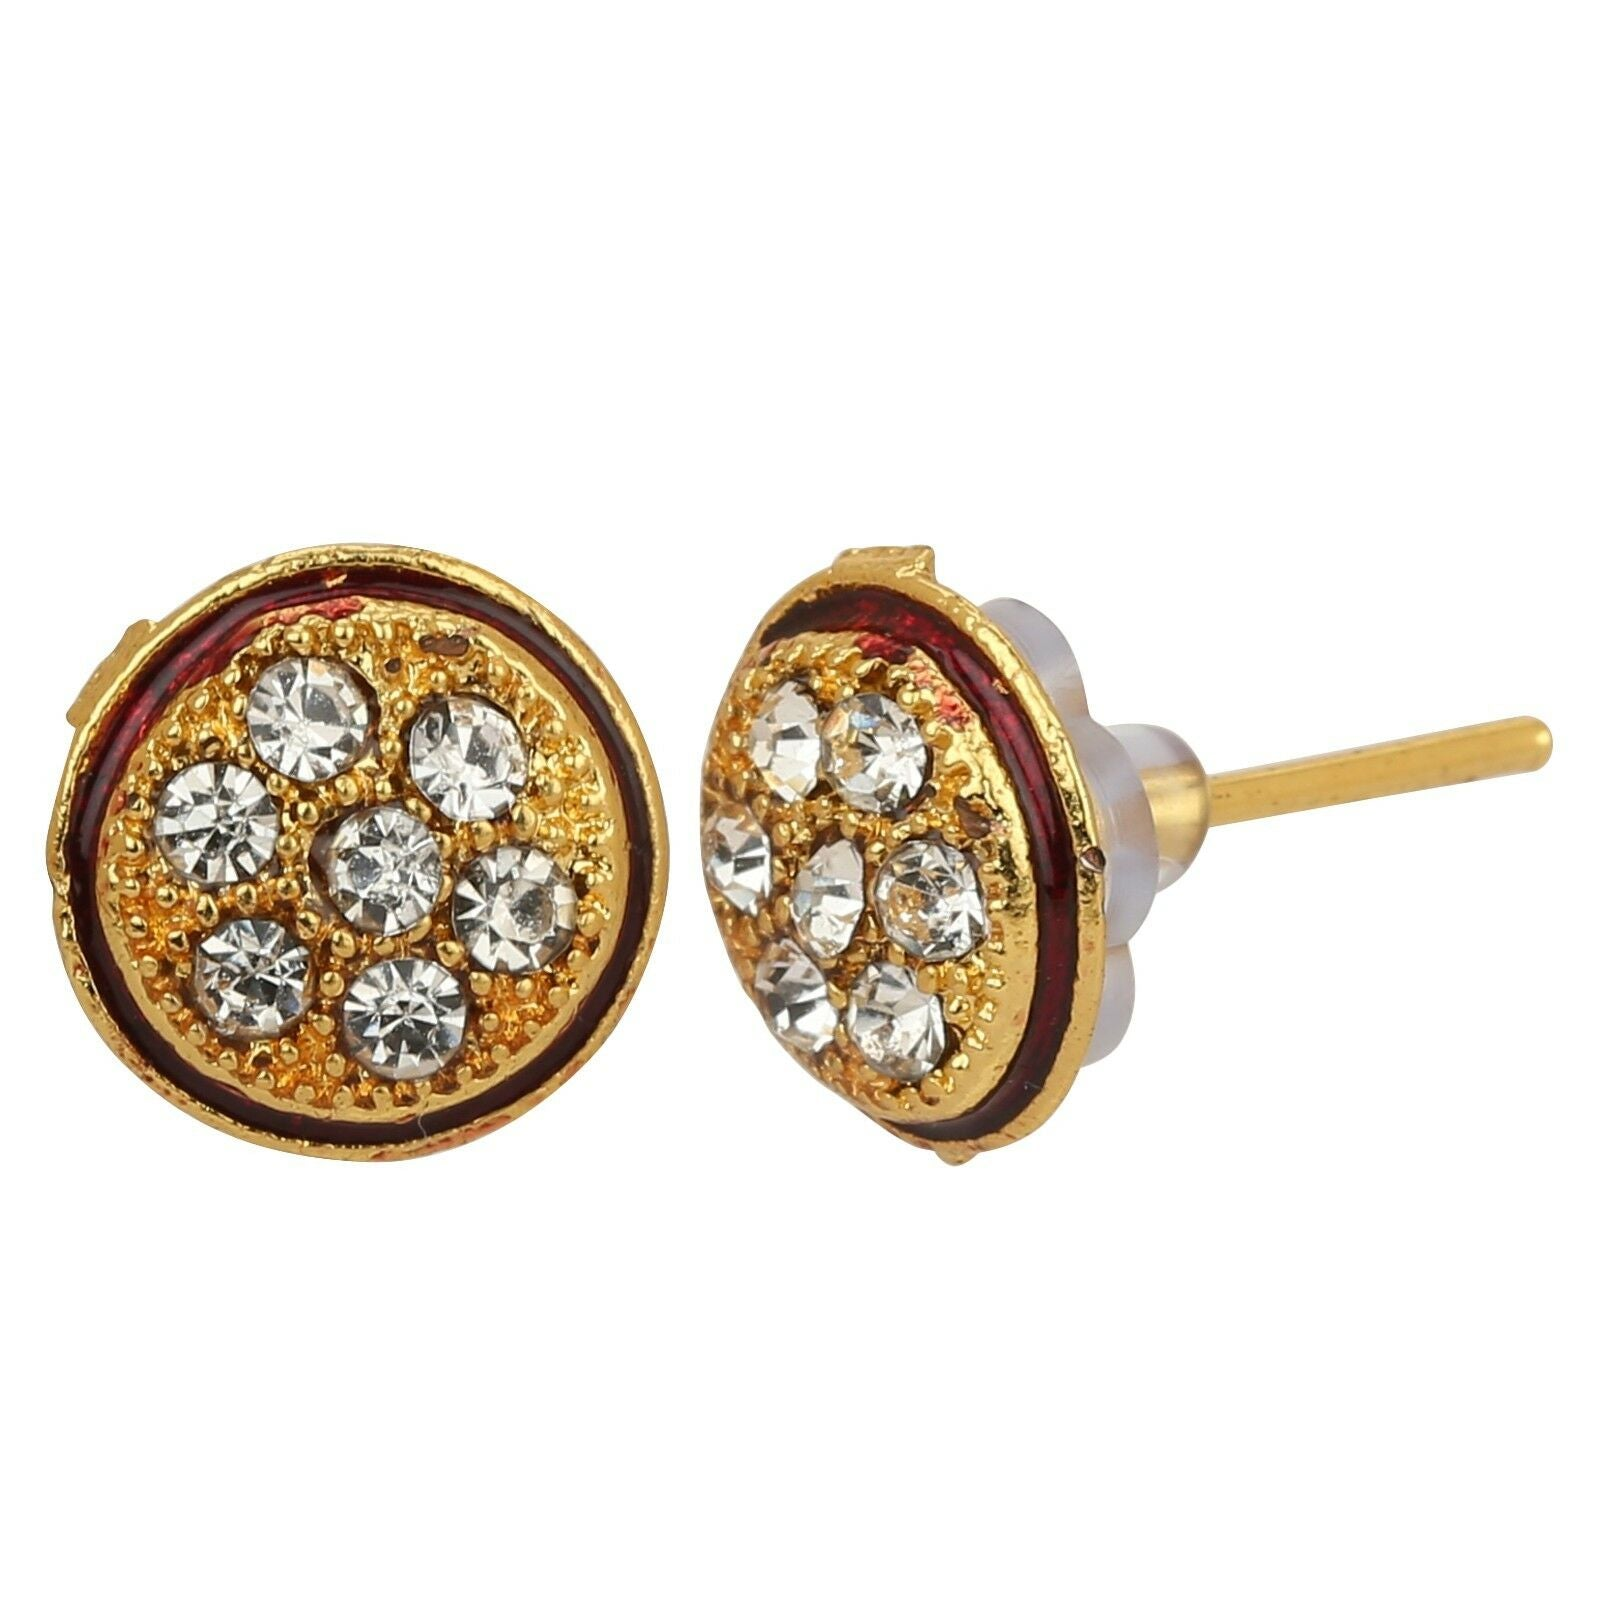 Indian Traditional Gold Plated Stud Earrings Jewelry Women Wedding Jhumka Jhumki